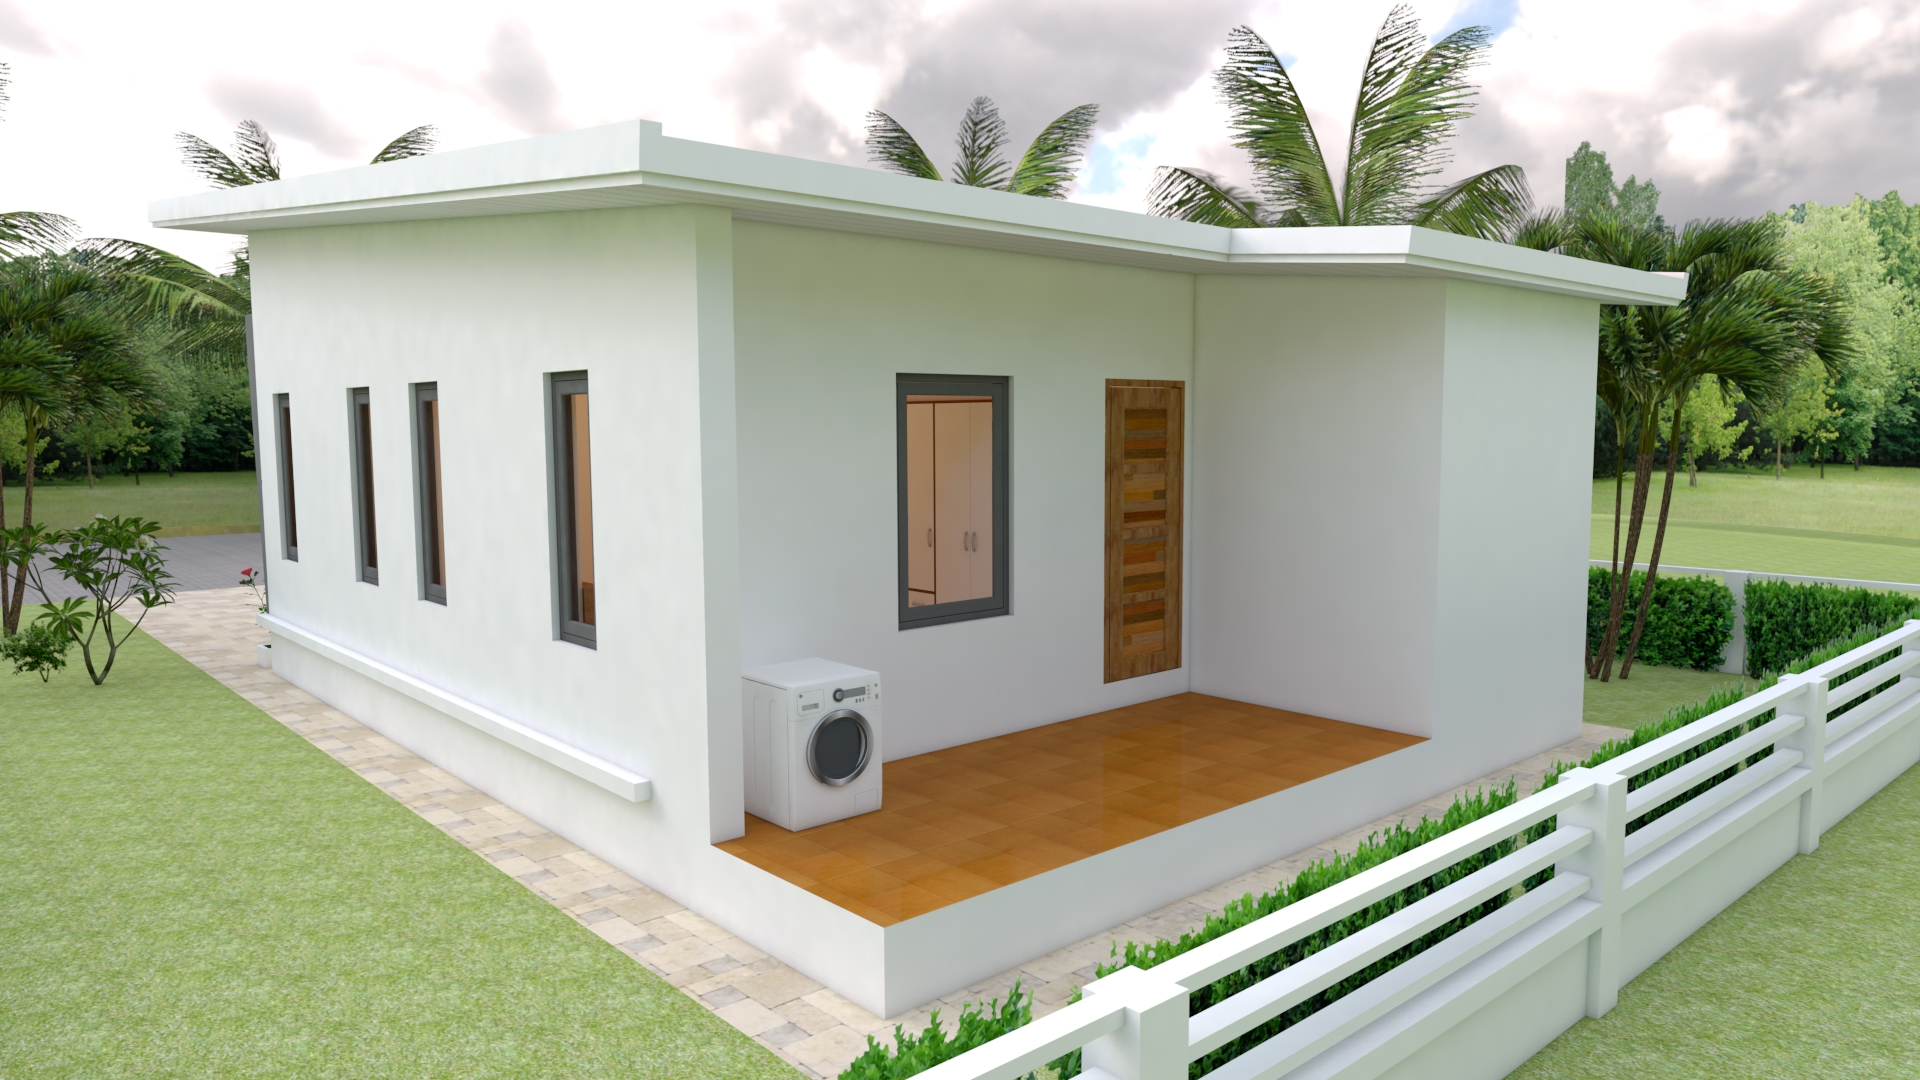 Small Family House 7x12 Meter 23x40 Feet 2 Beds 3